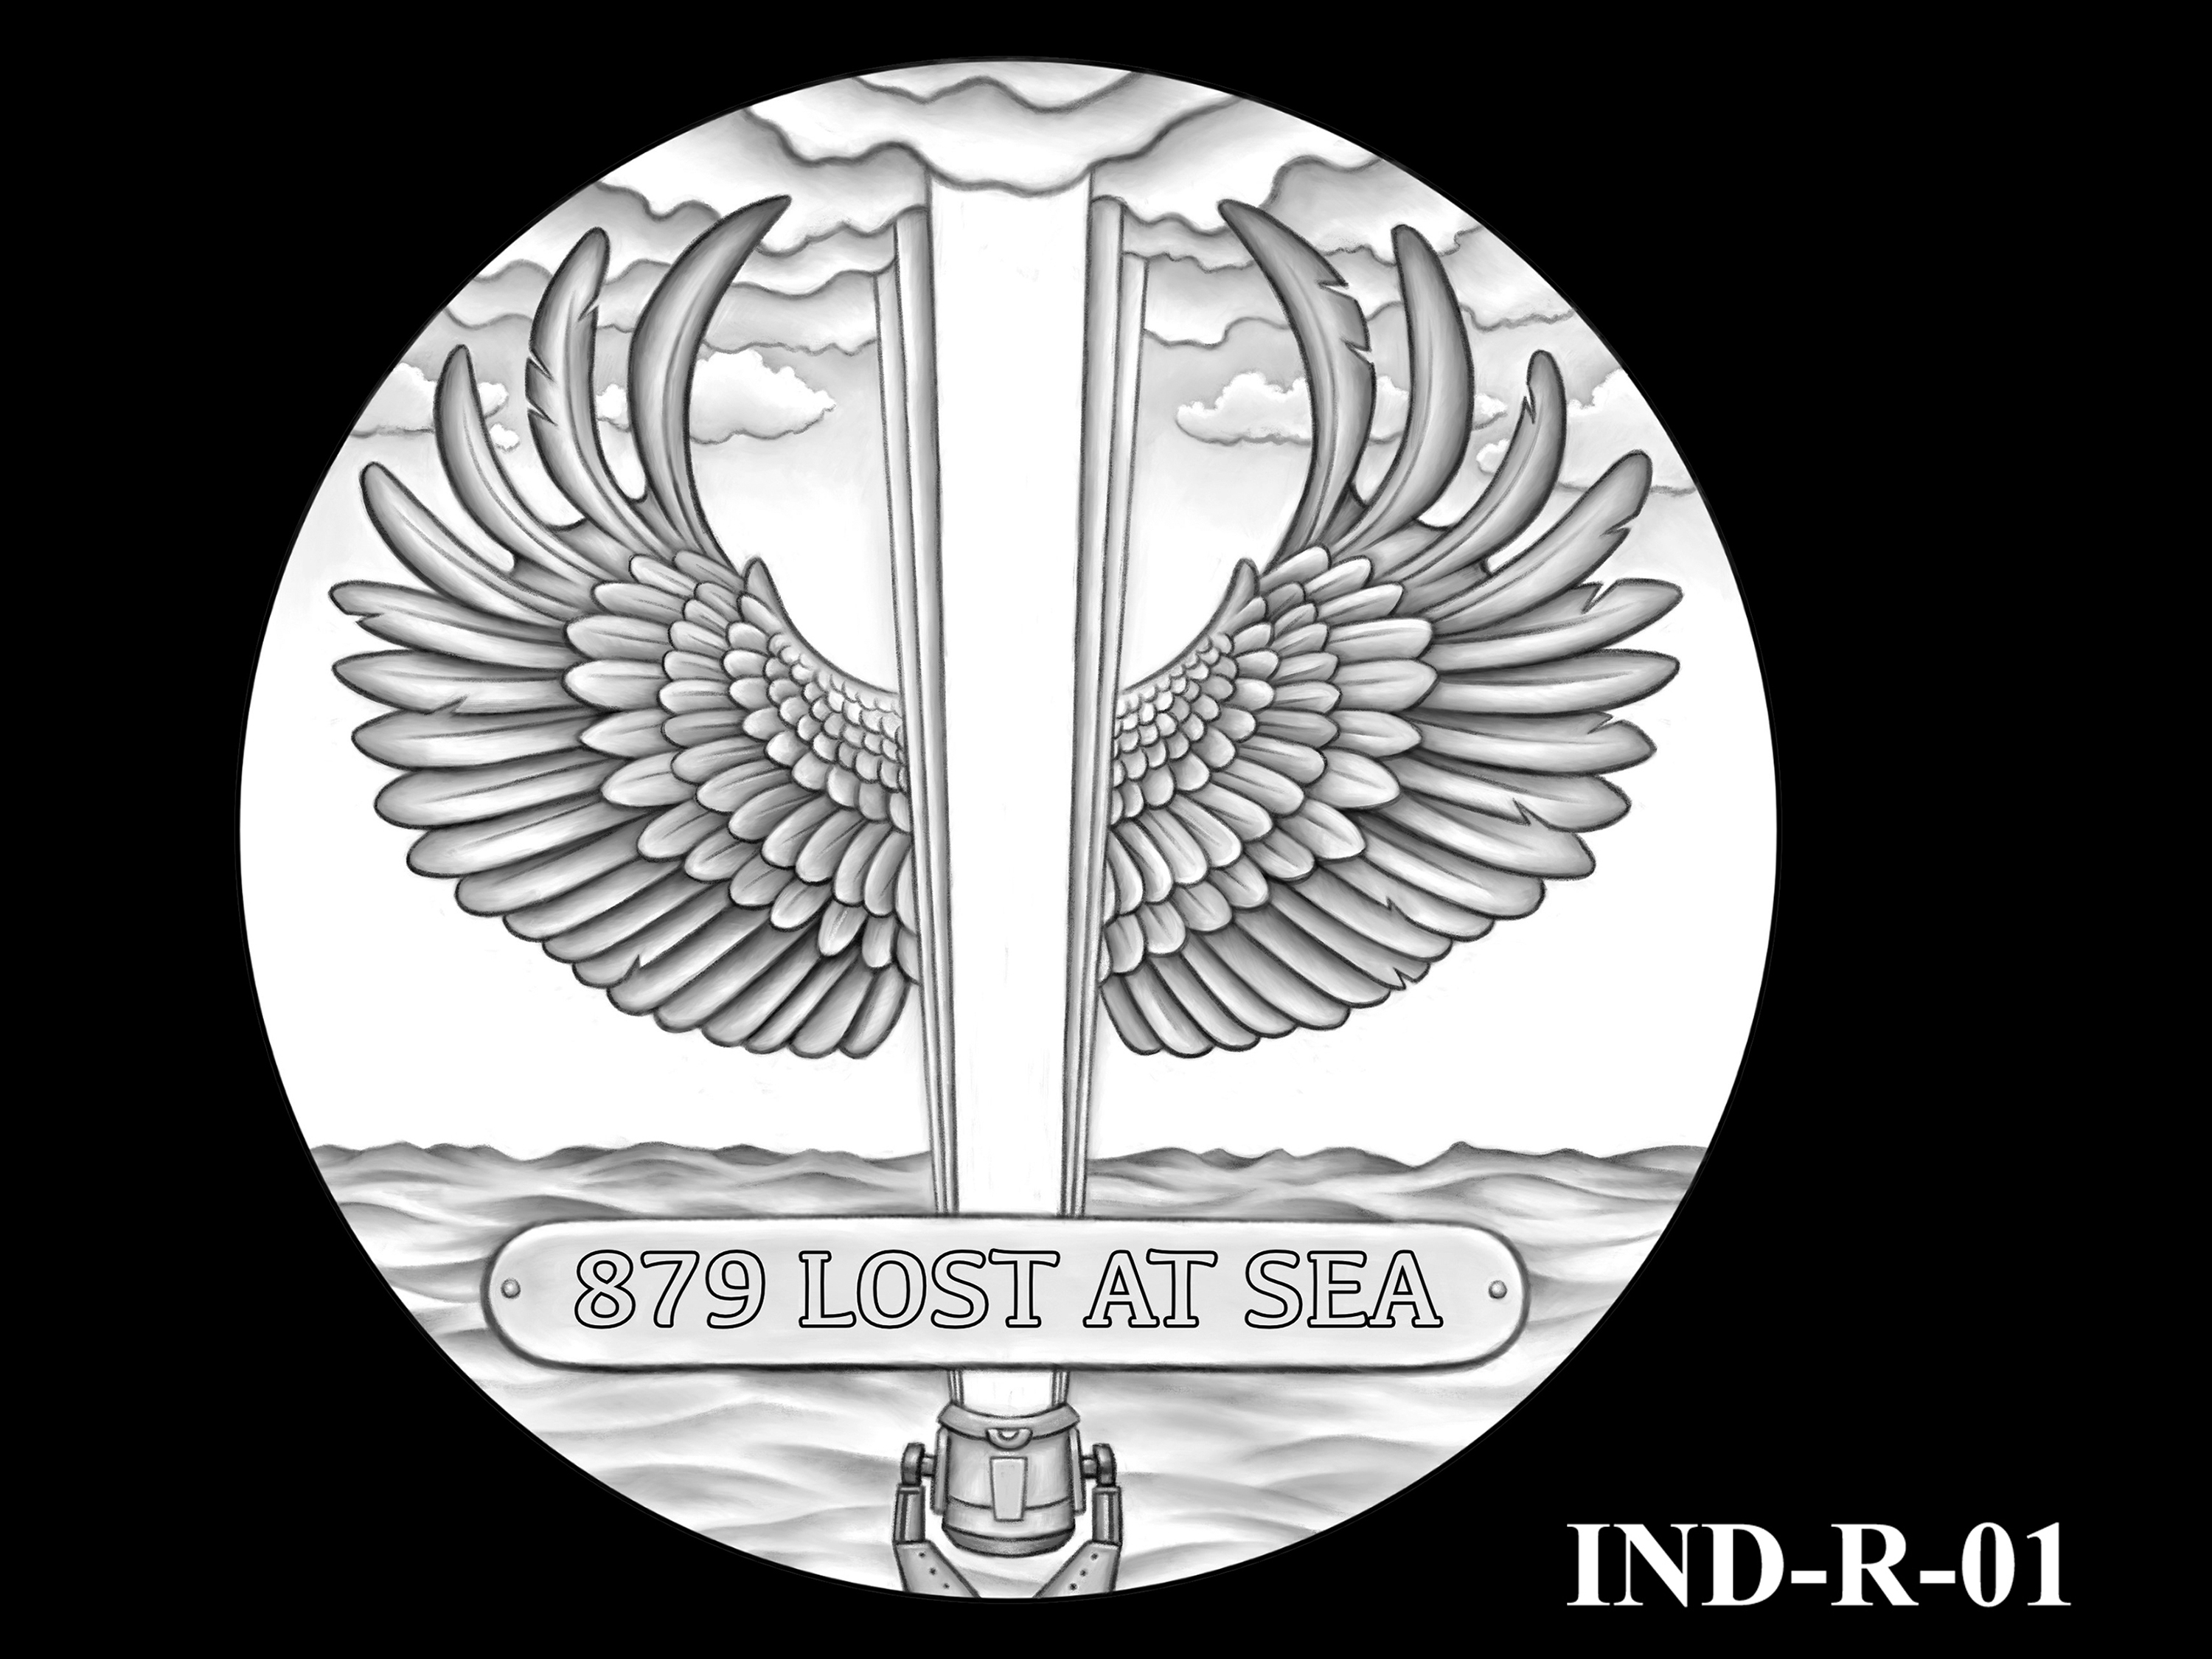 IND-R-01 - USS Indianapolis Congressional Gold Medal - Reverse